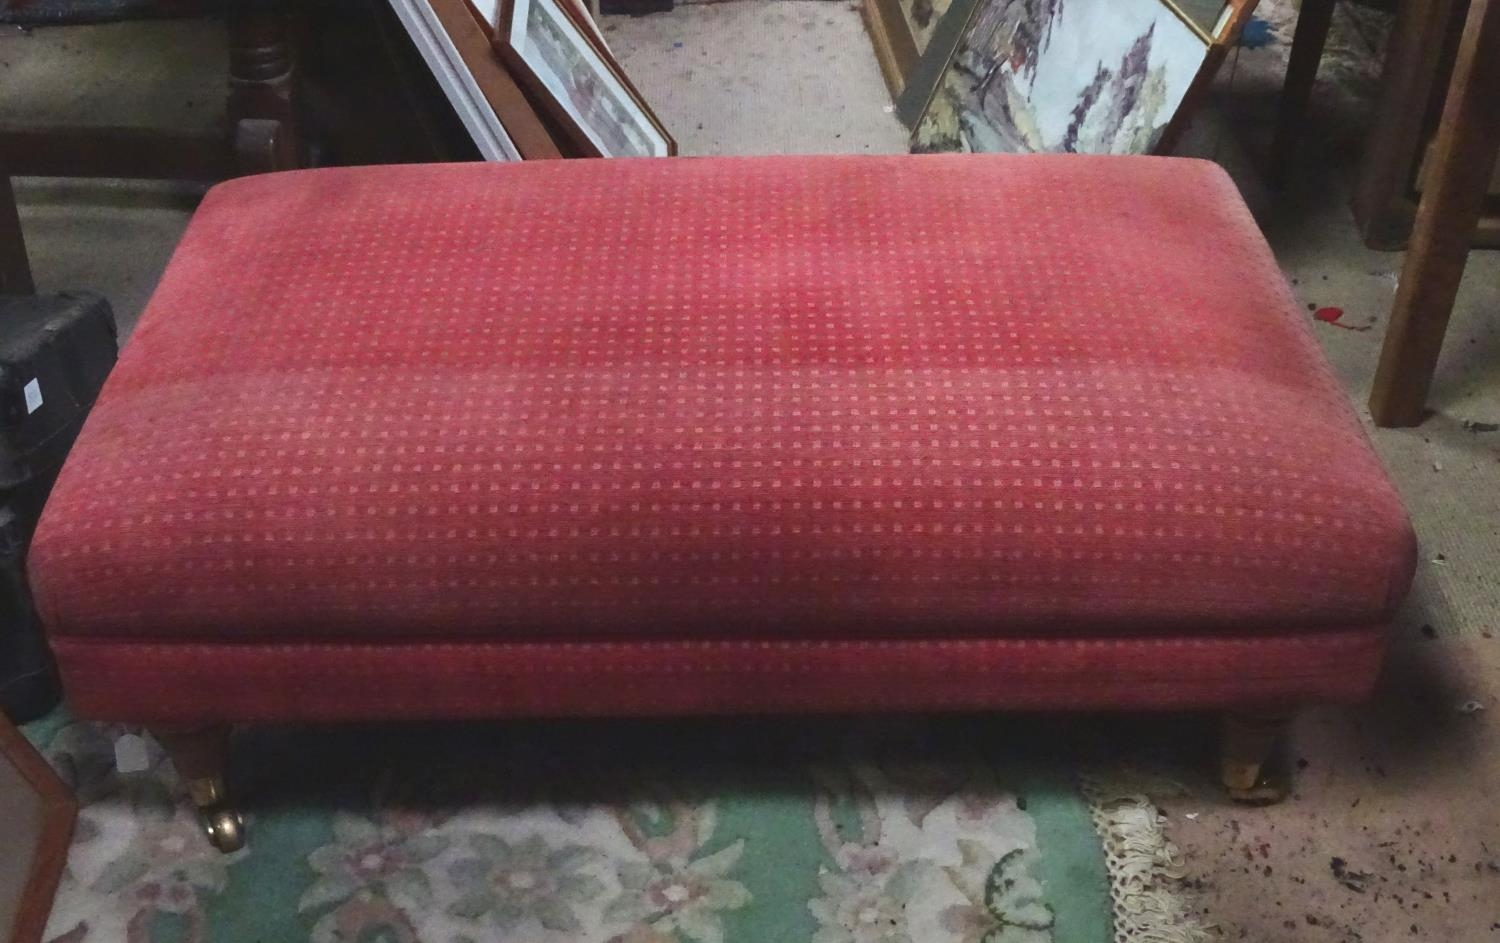 A large upholstered footstool on castors Please Note - we do not make reference to the condition - Image 2 of 6